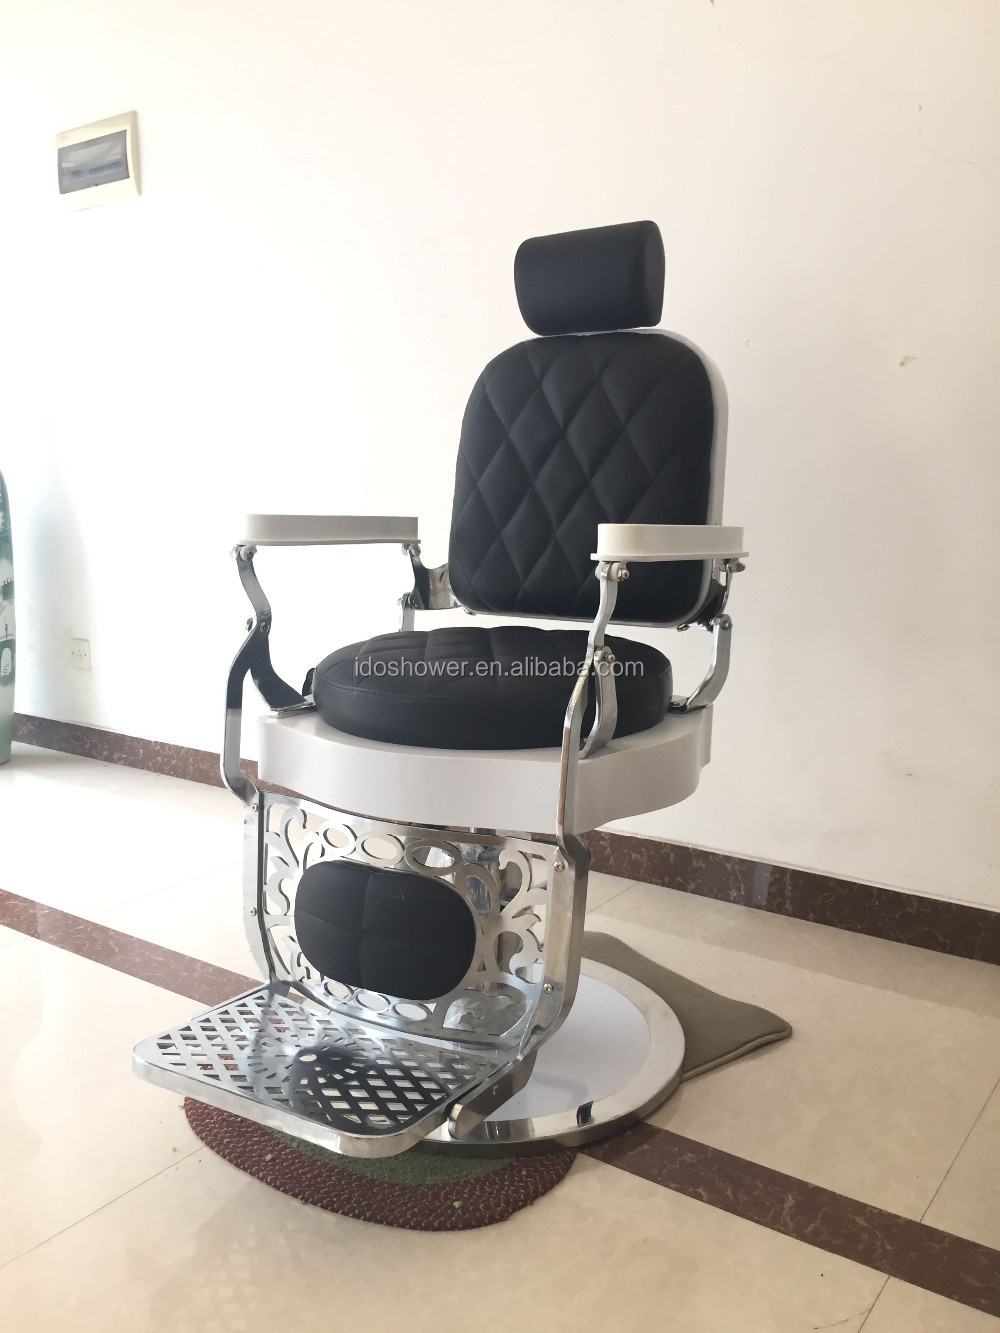 Belmont Barber Chairs - Used belmont barber chairs used belmont barber chairs suppliers and manufacturers at alibaba com